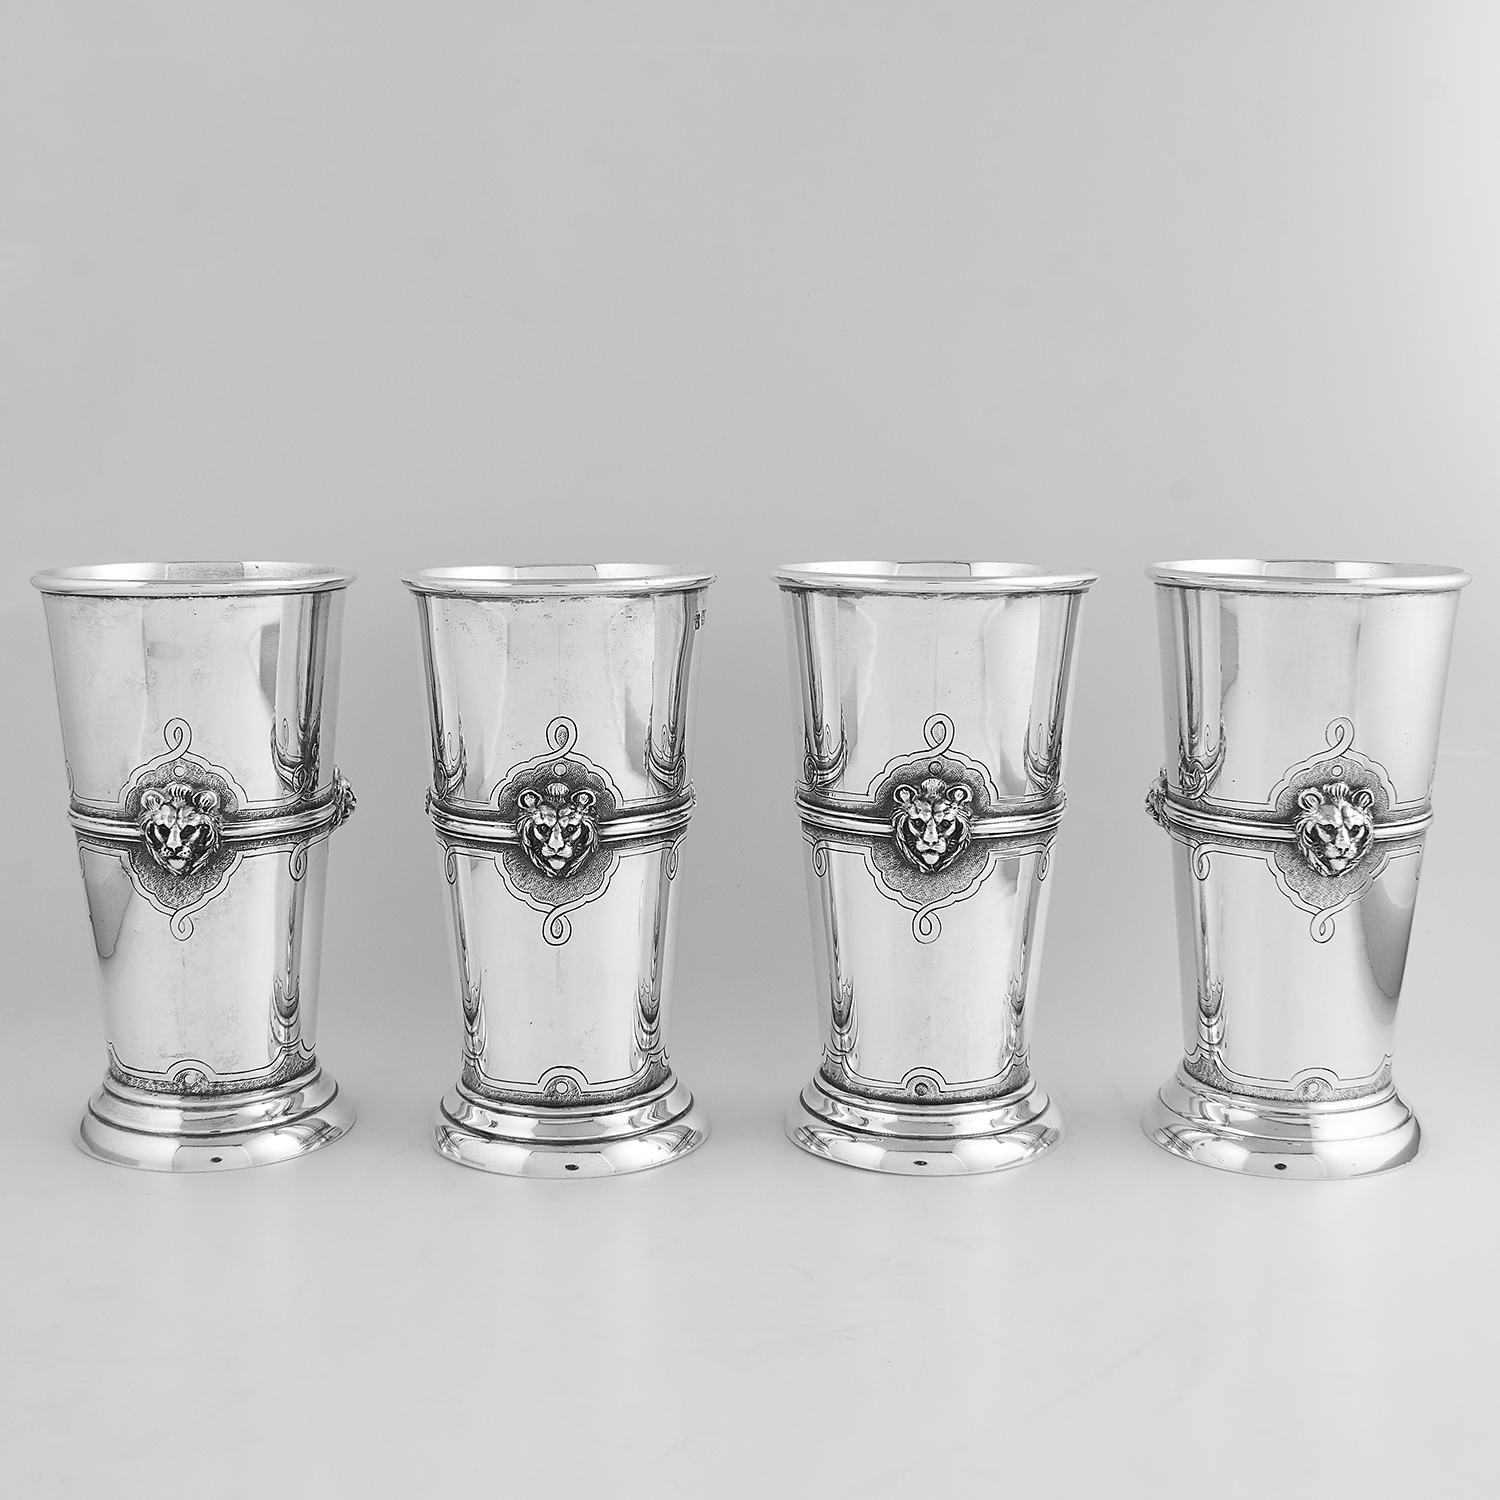 FOUR ANTIQUE STERLING SILVER BEAKERS / CUPS, D & J WELLBY, LONDON 1910 the tapering bodies with